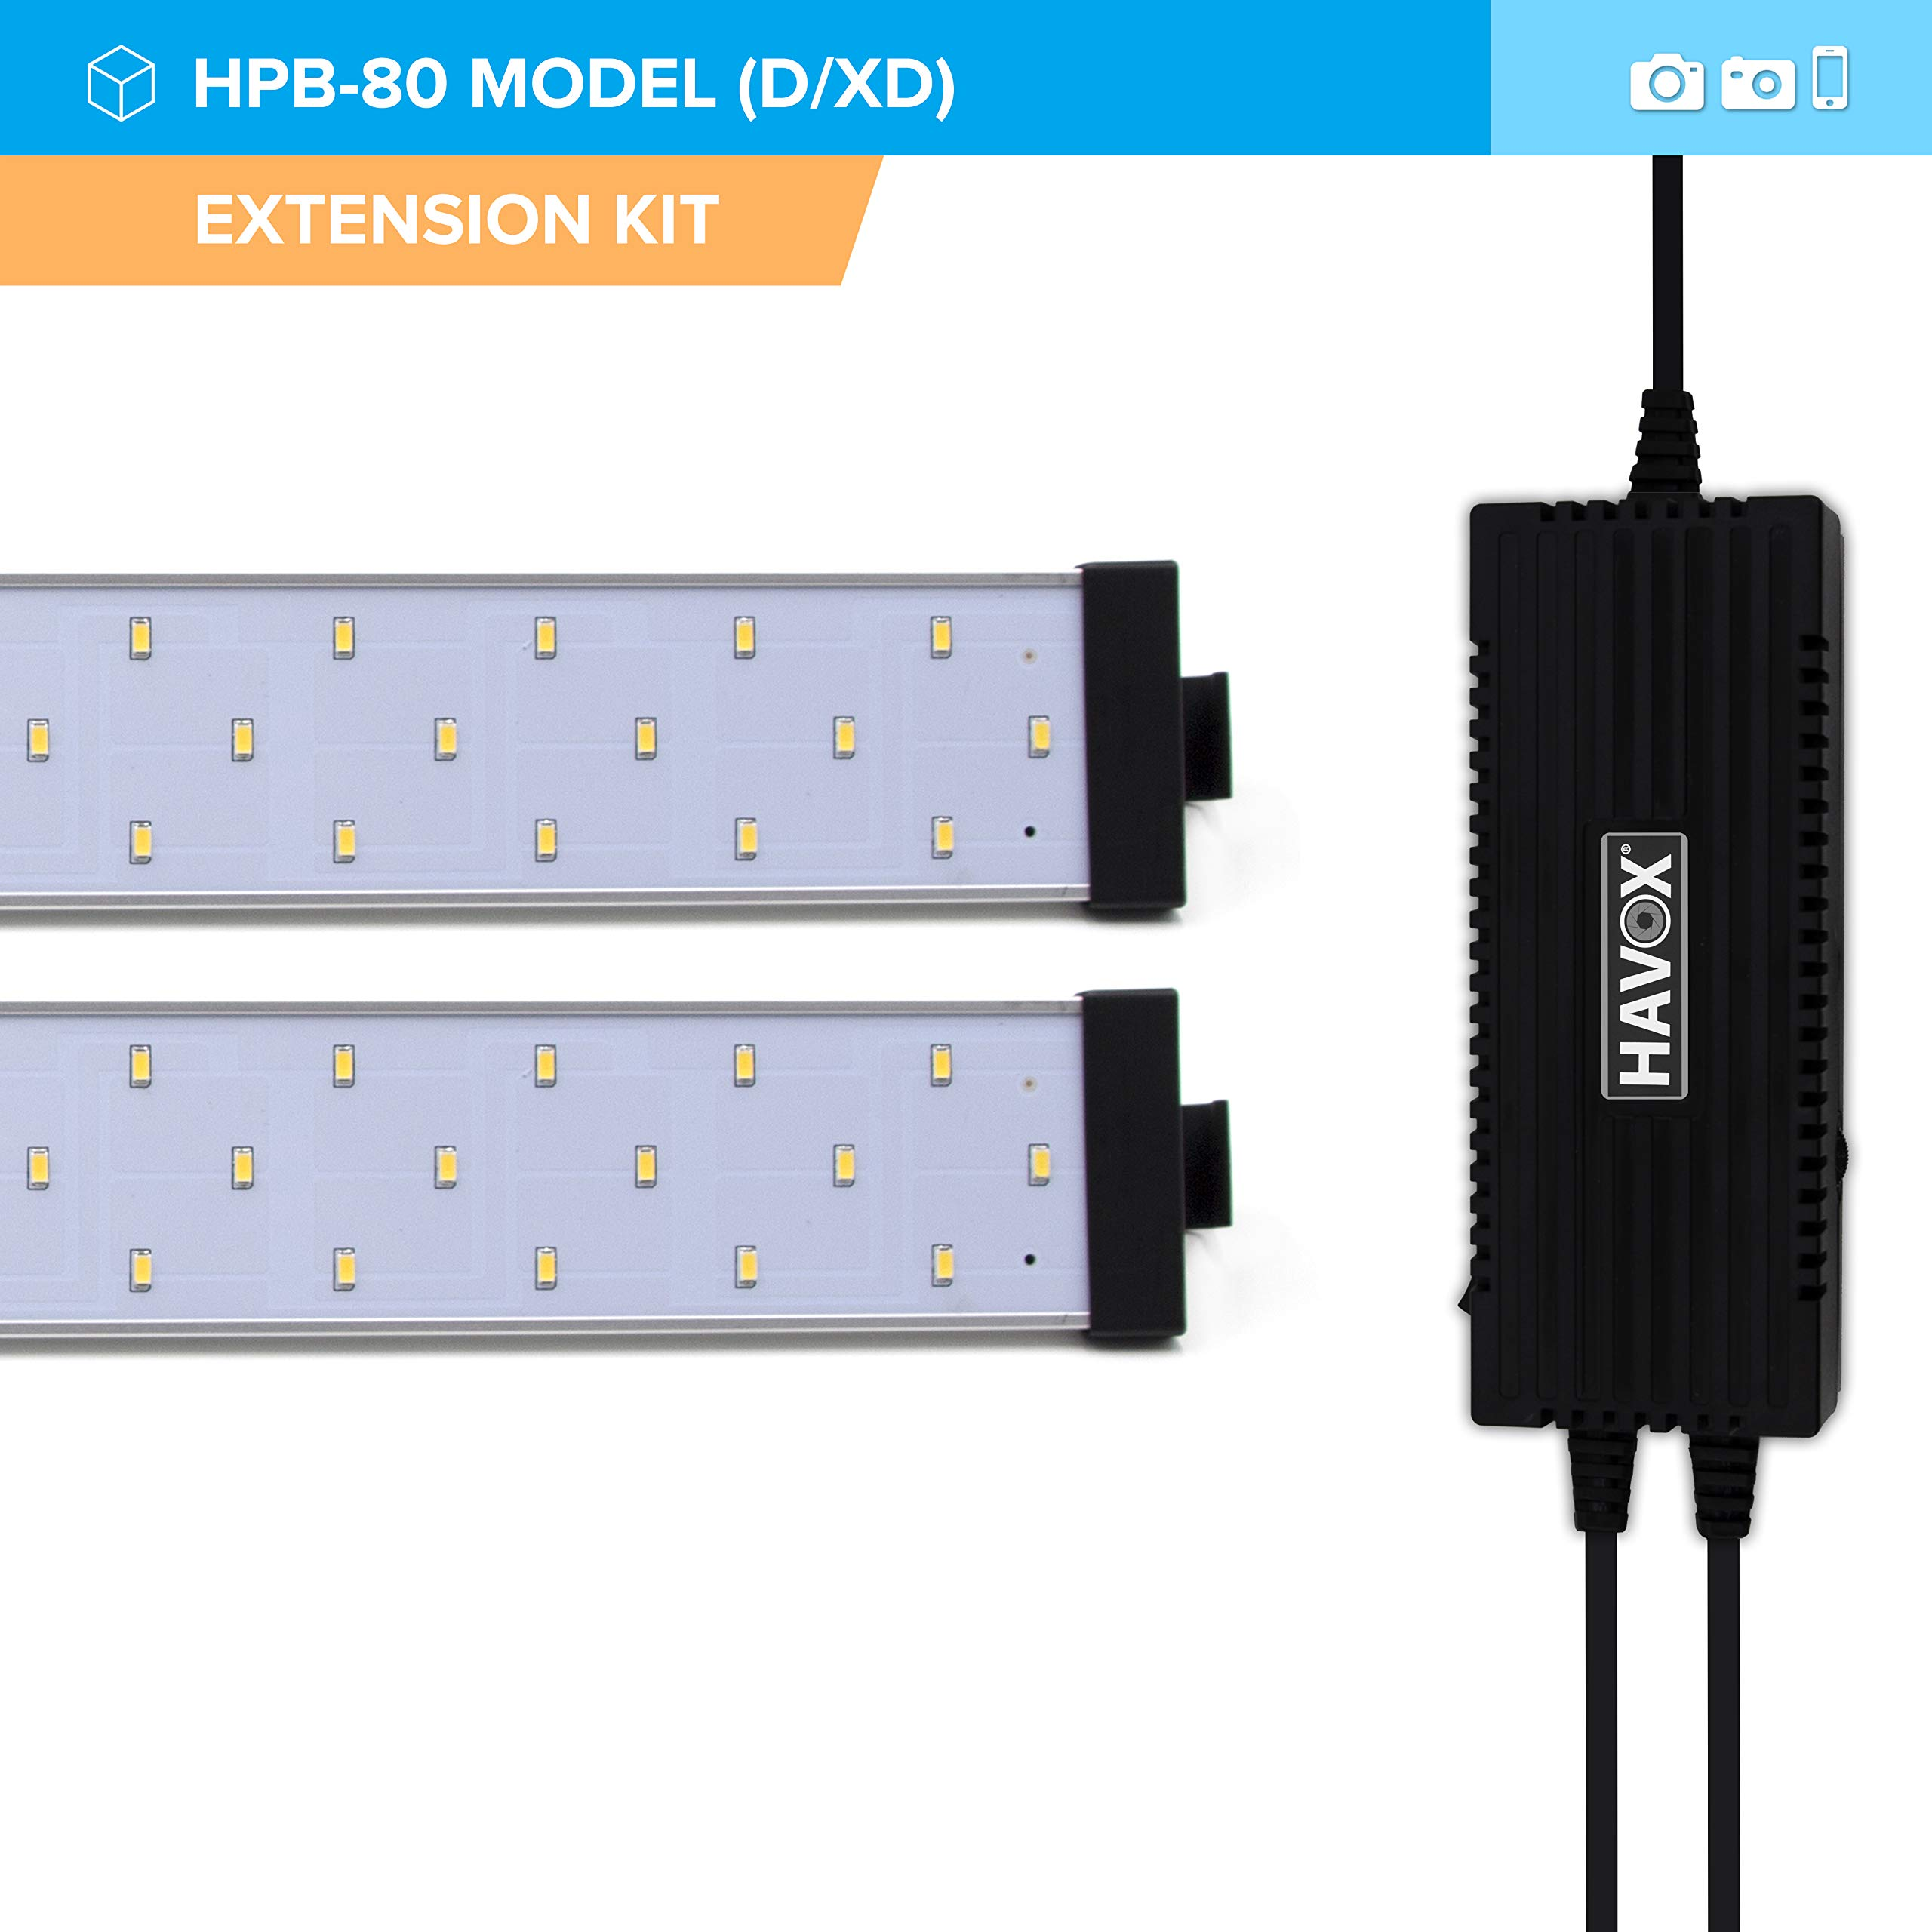 HAVOX - Extension kit for Photo Studio HPB-80D/XD - 2 LED Ramps with Power Supply - 5500k Daylight - 13,000 lumens - CRI 93